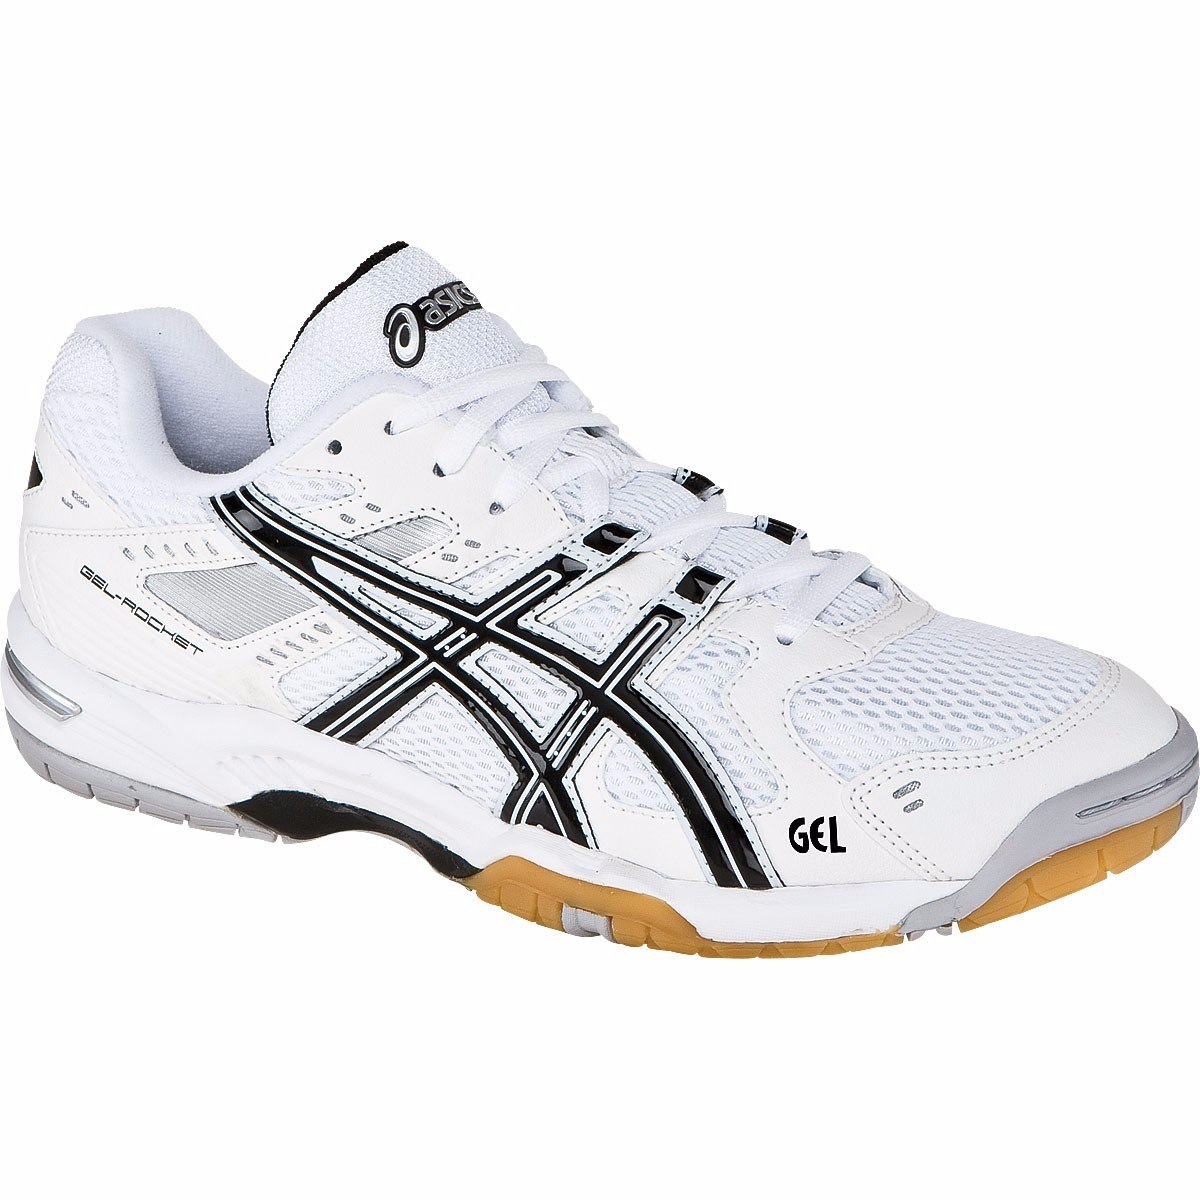 Zapatillas Asics De Voley